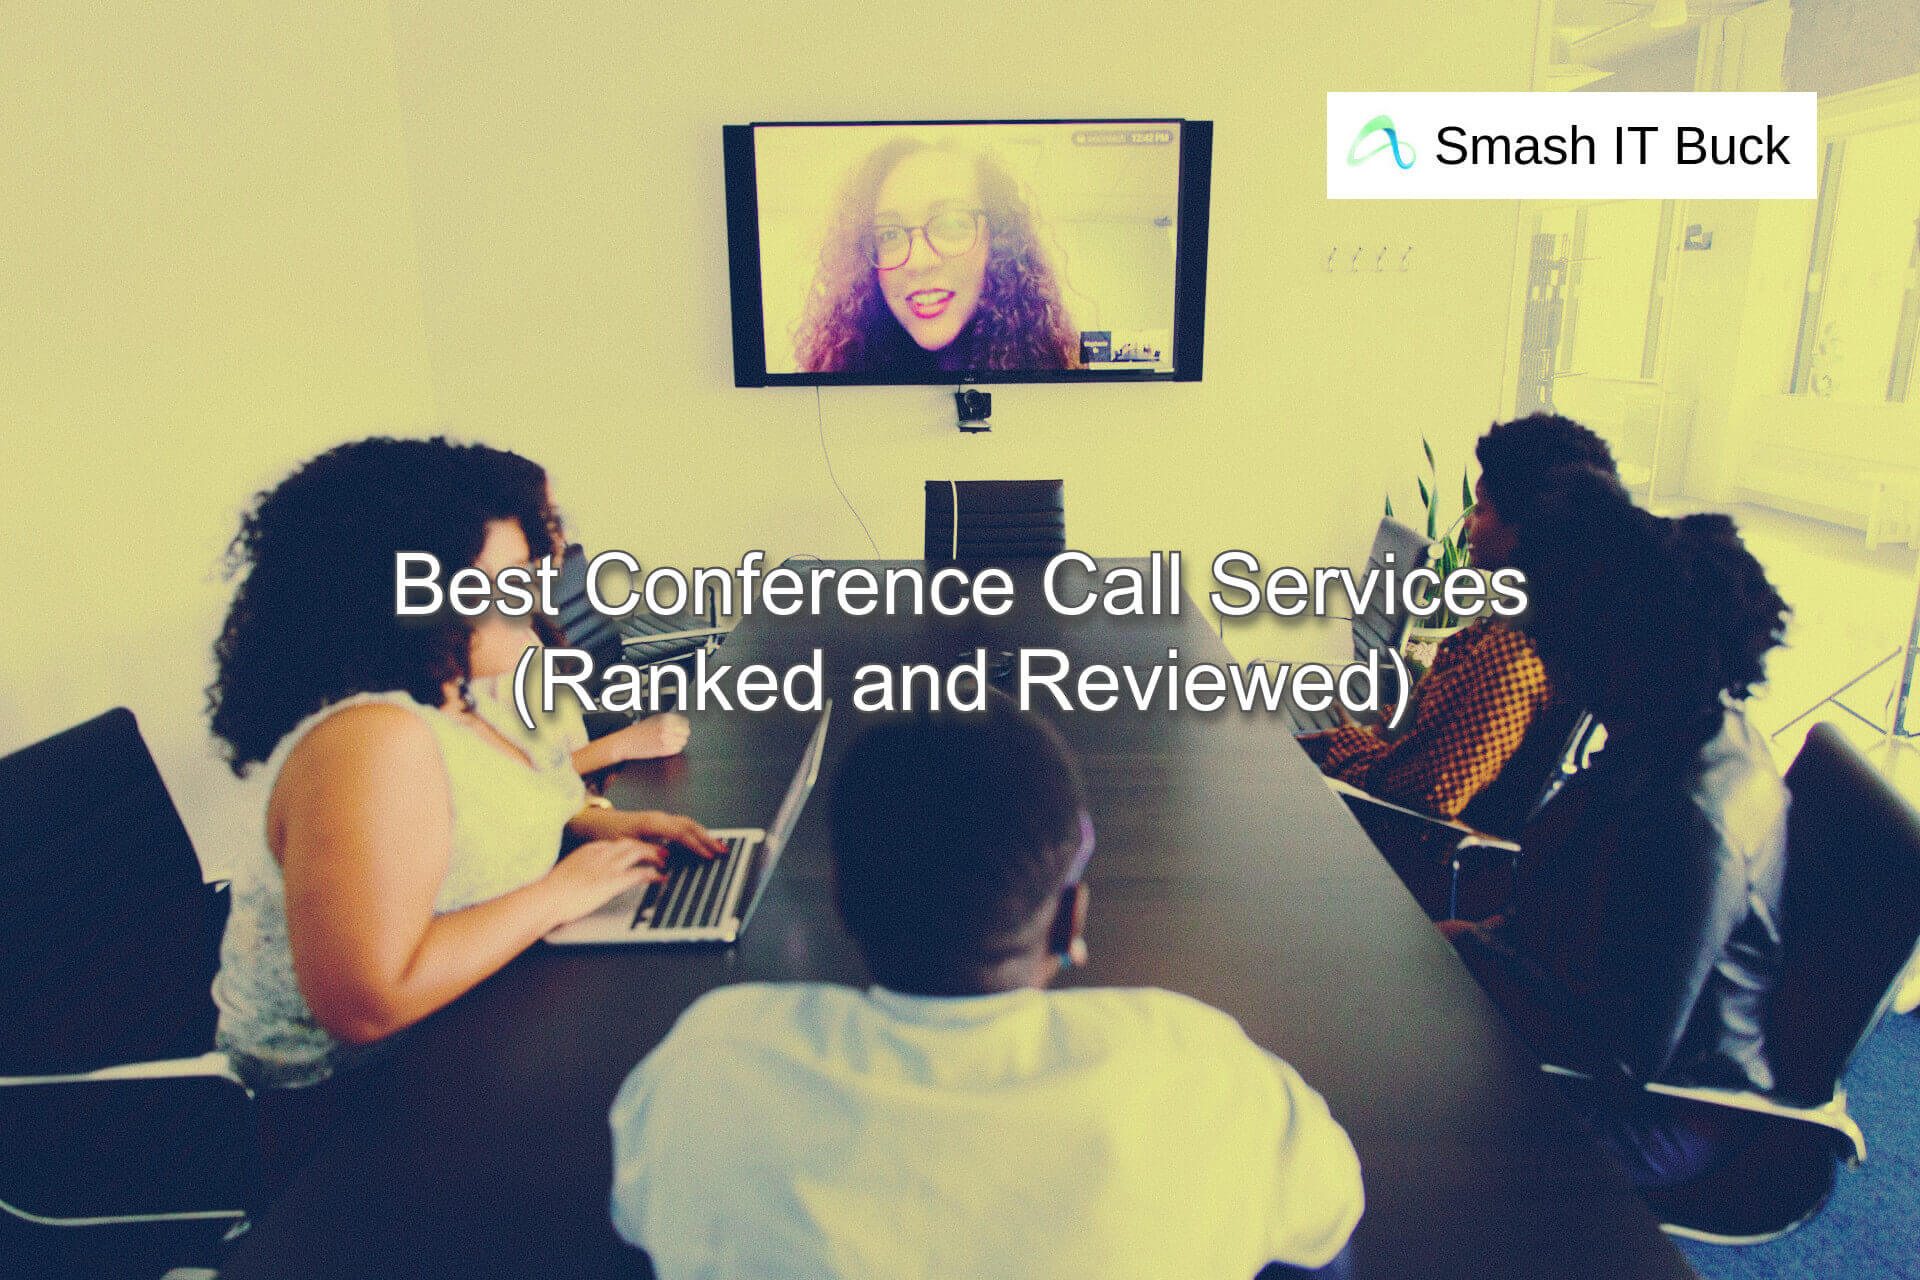 Best Conference Call Services to use in 2021